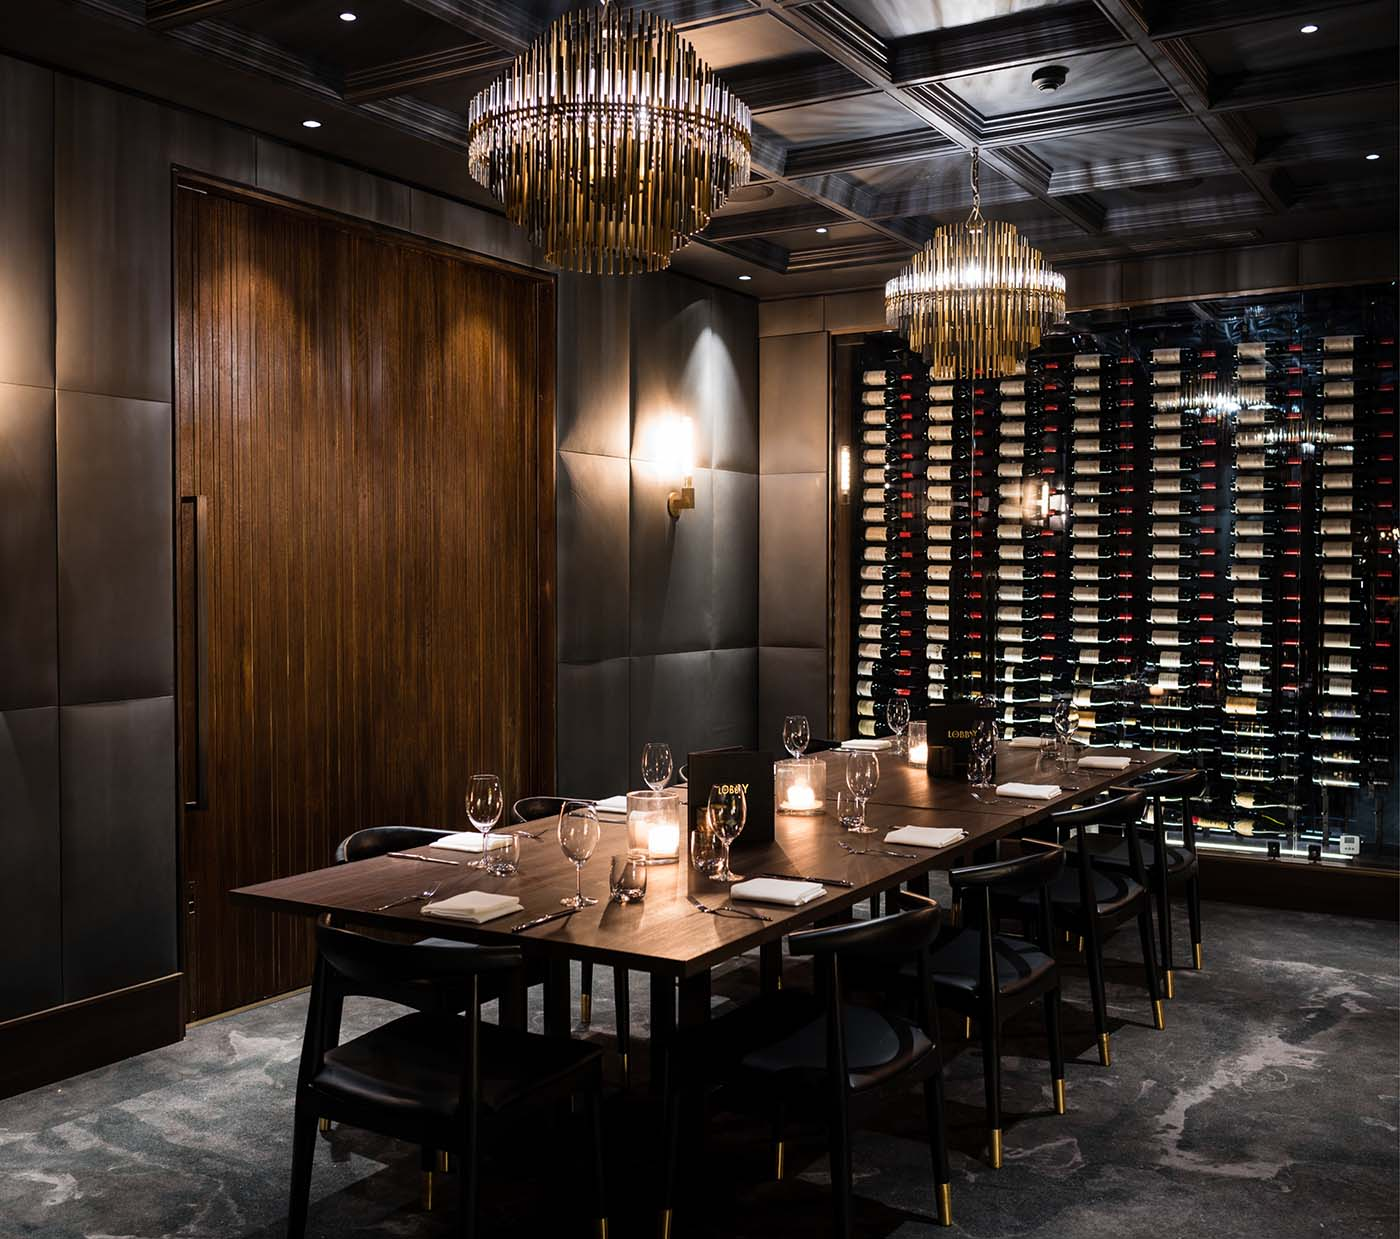 Restaurant room with dining tables and wine rack with a dark palette.